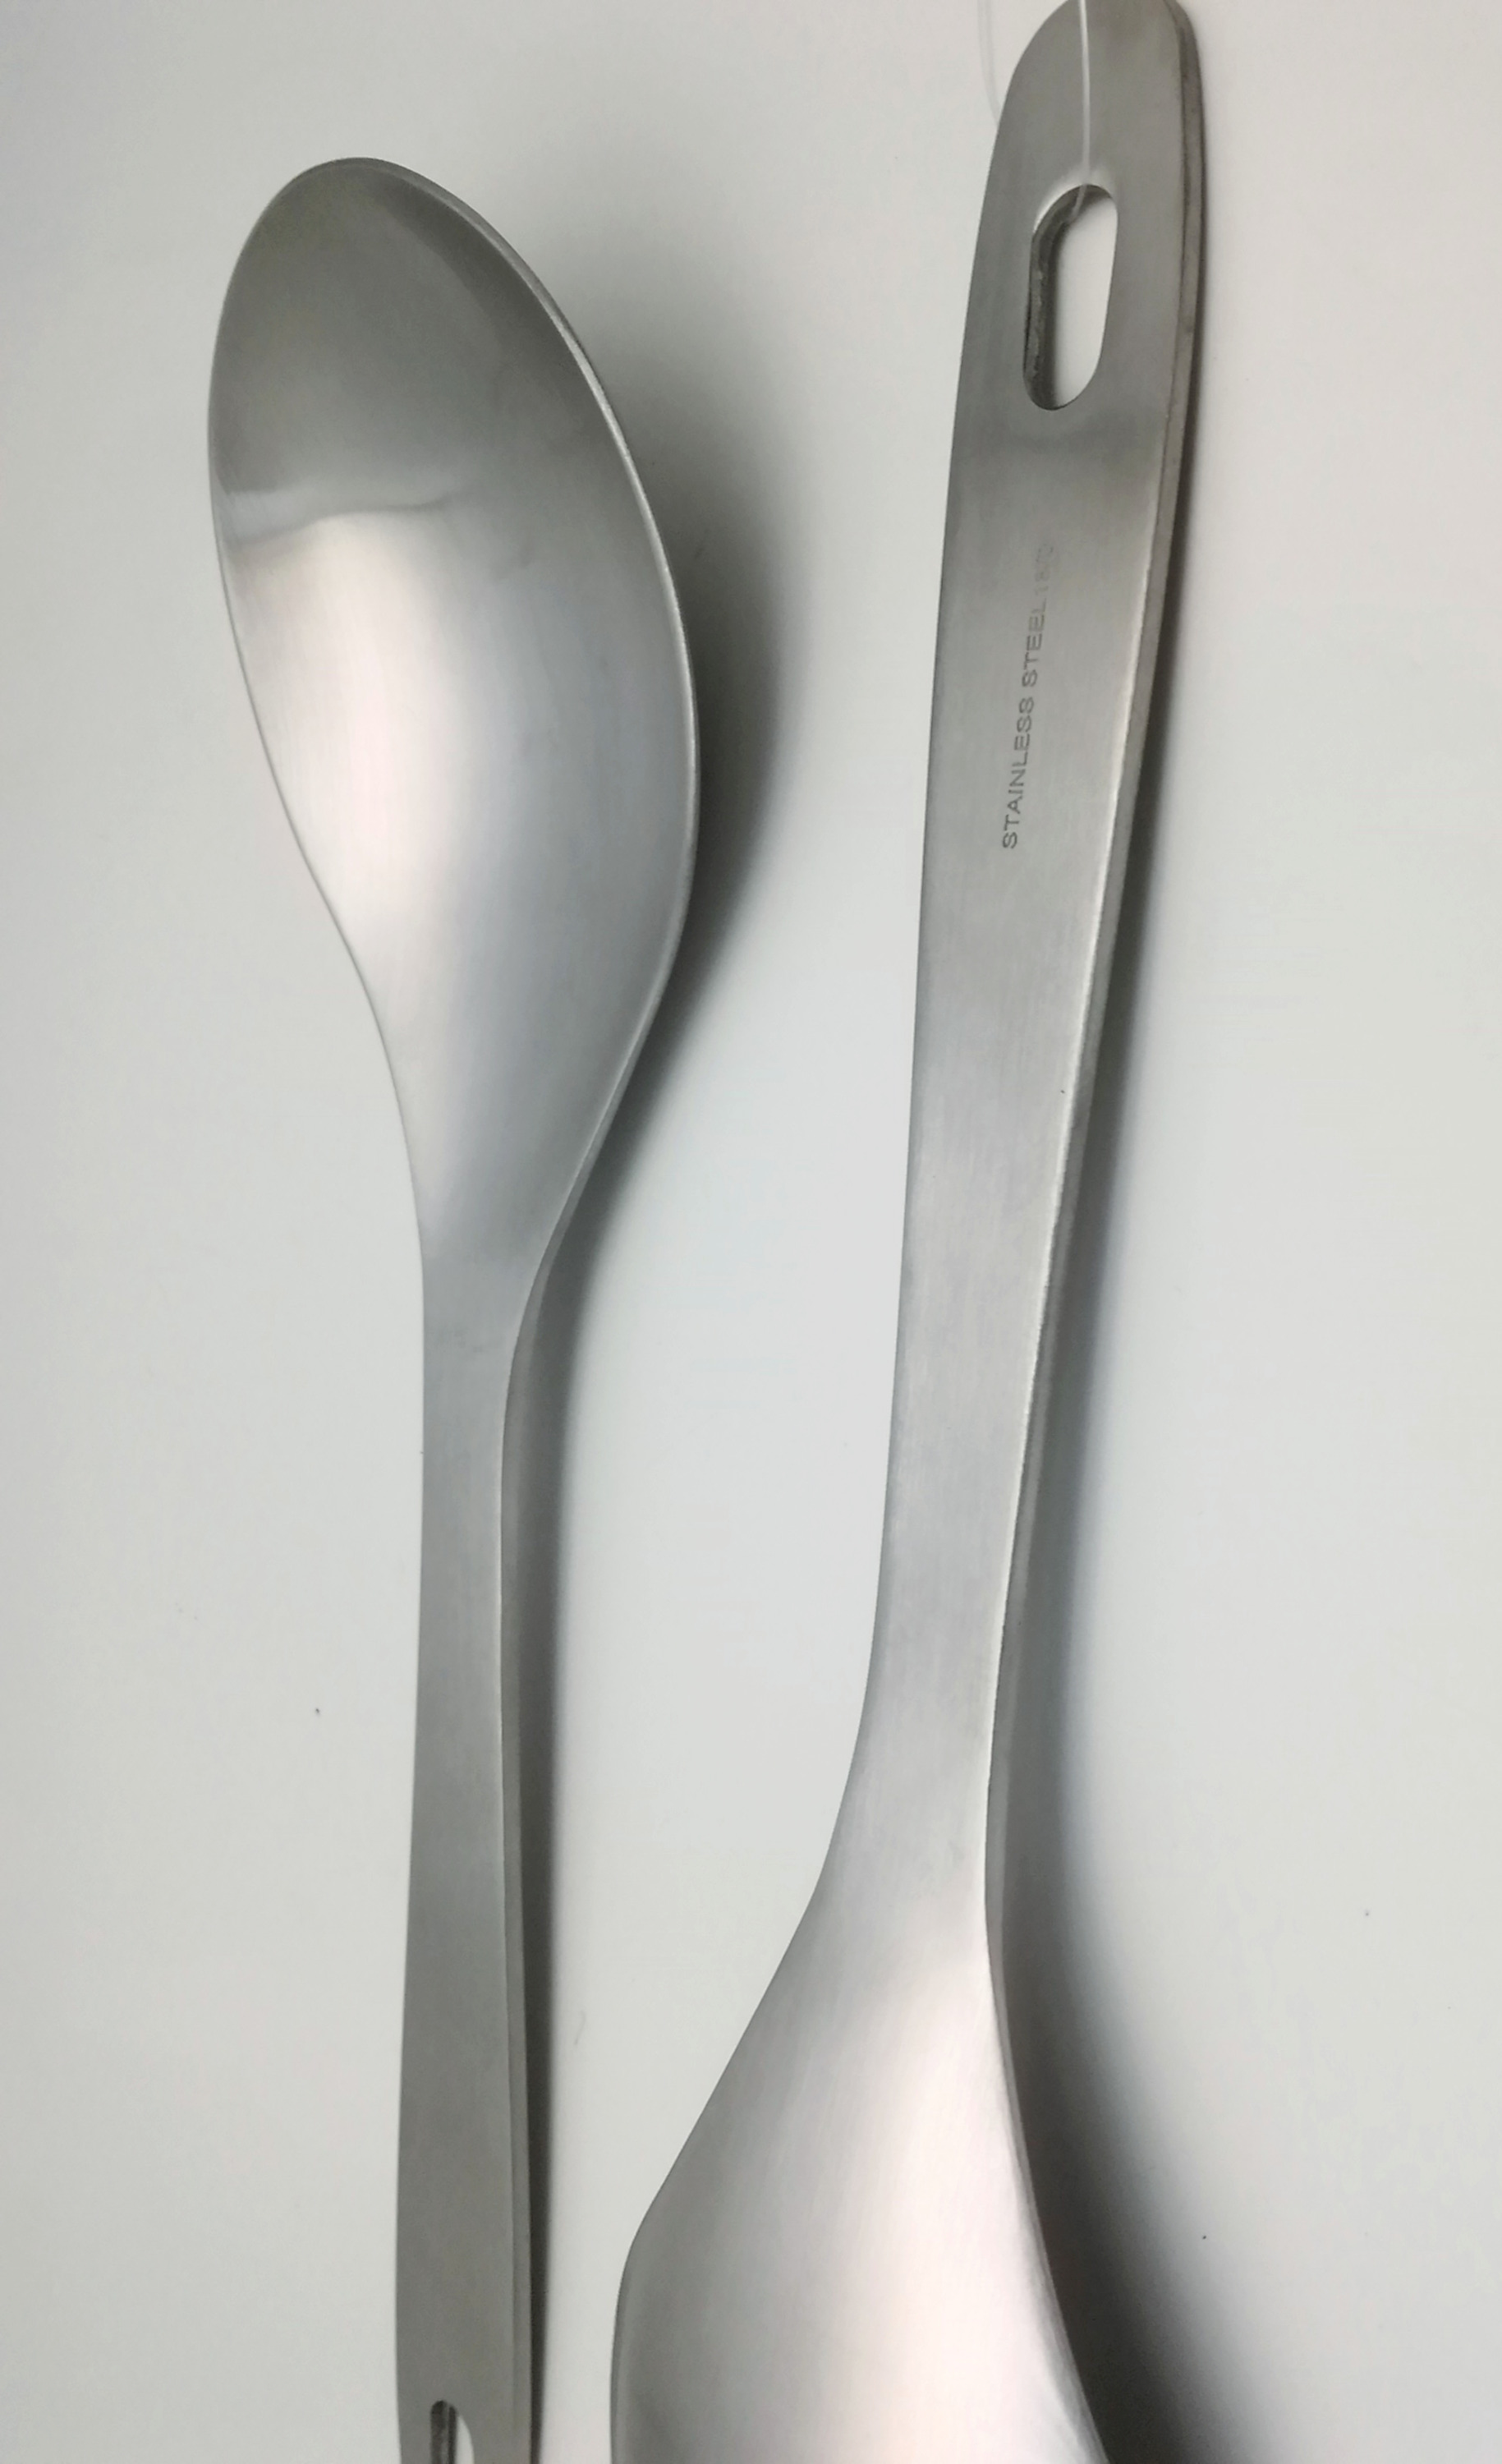 Stainless steel salad spoon